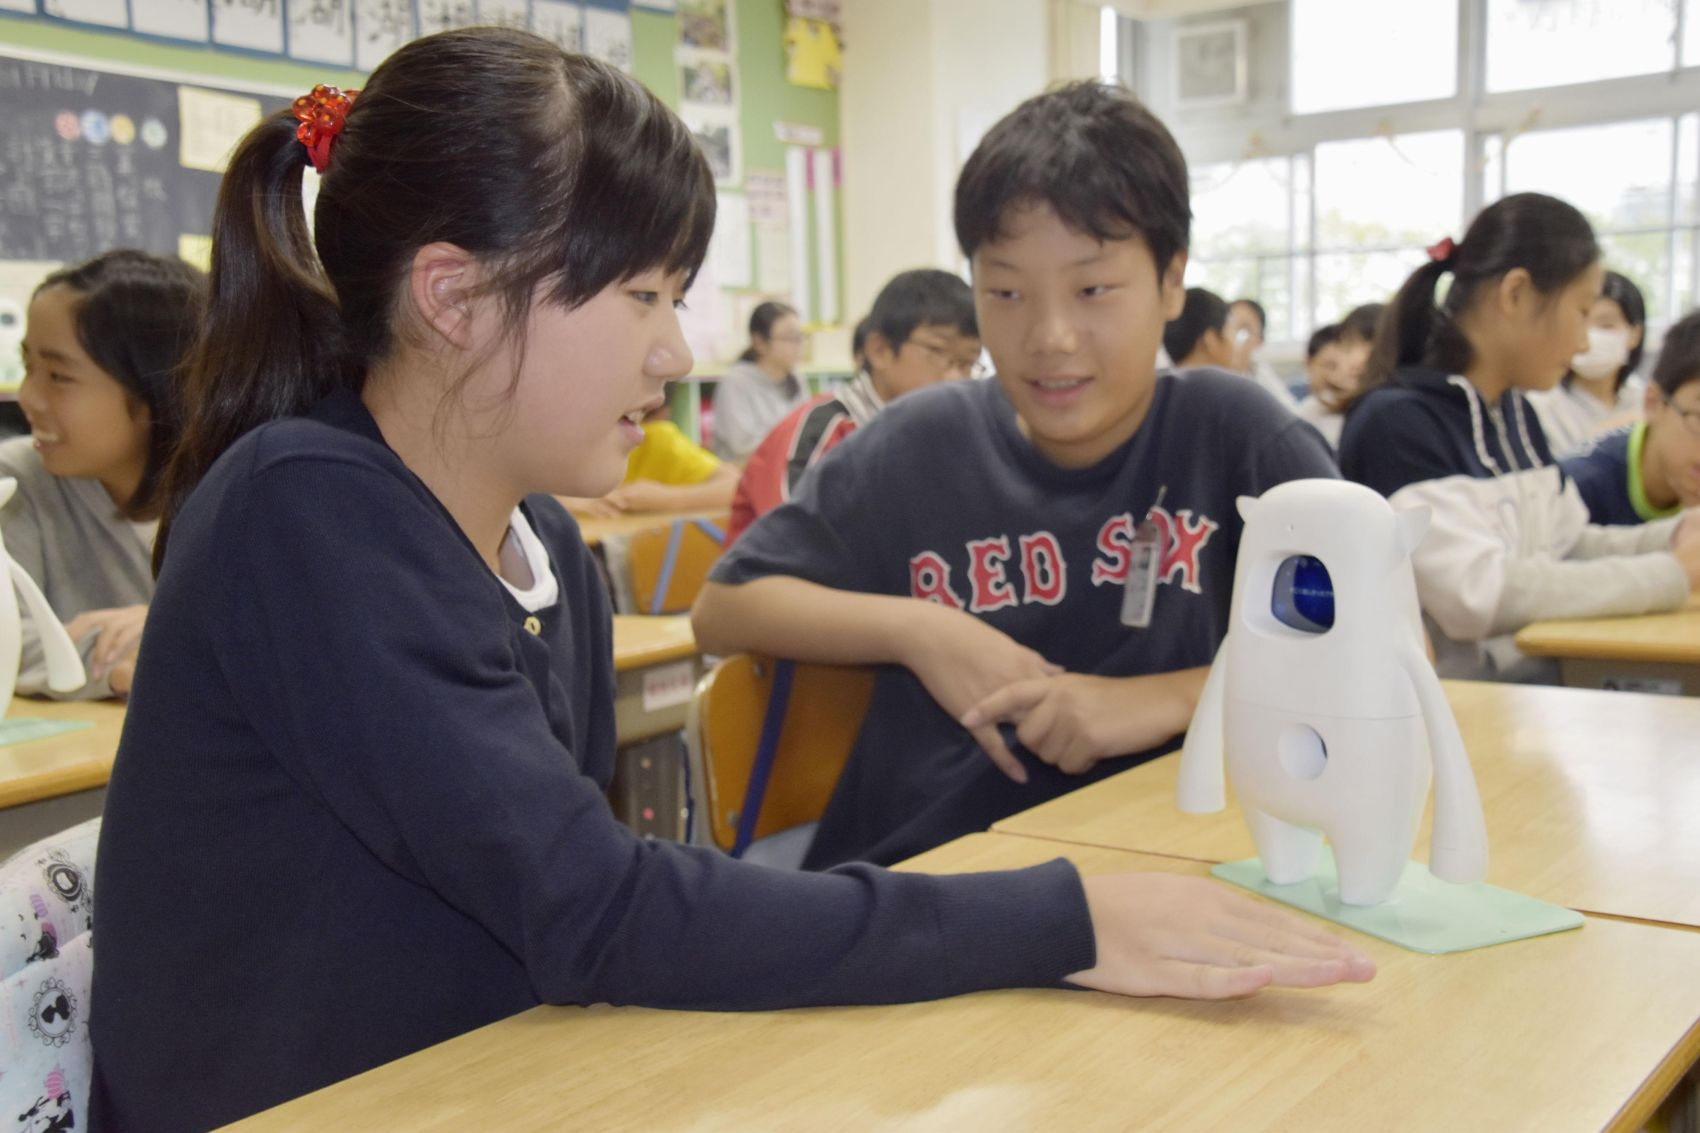 Japanese School Kids Learn English from AI Robots